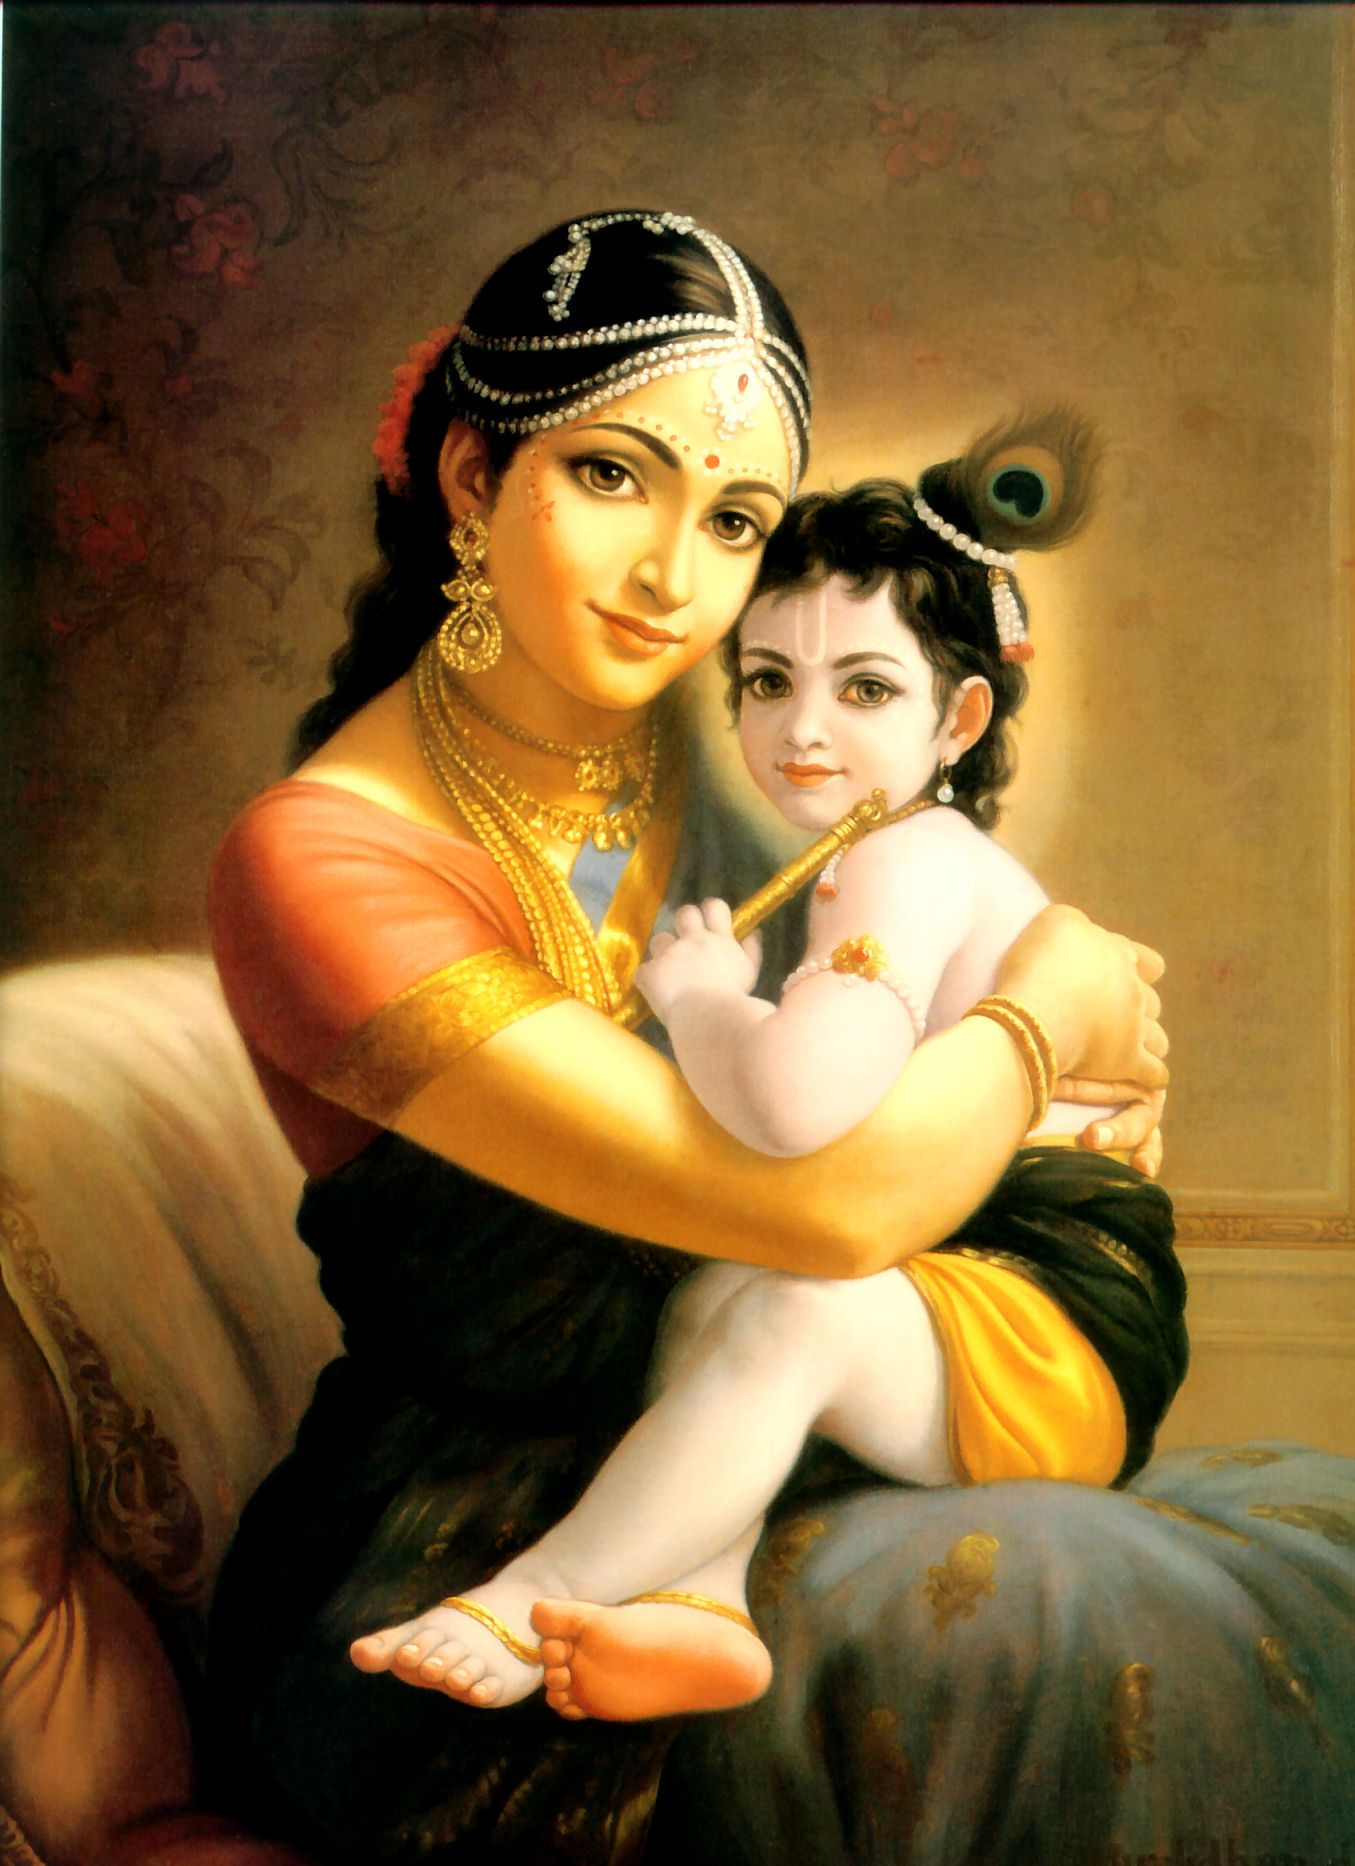 high definition 1280x720 baby krishna pic - Google Search ...